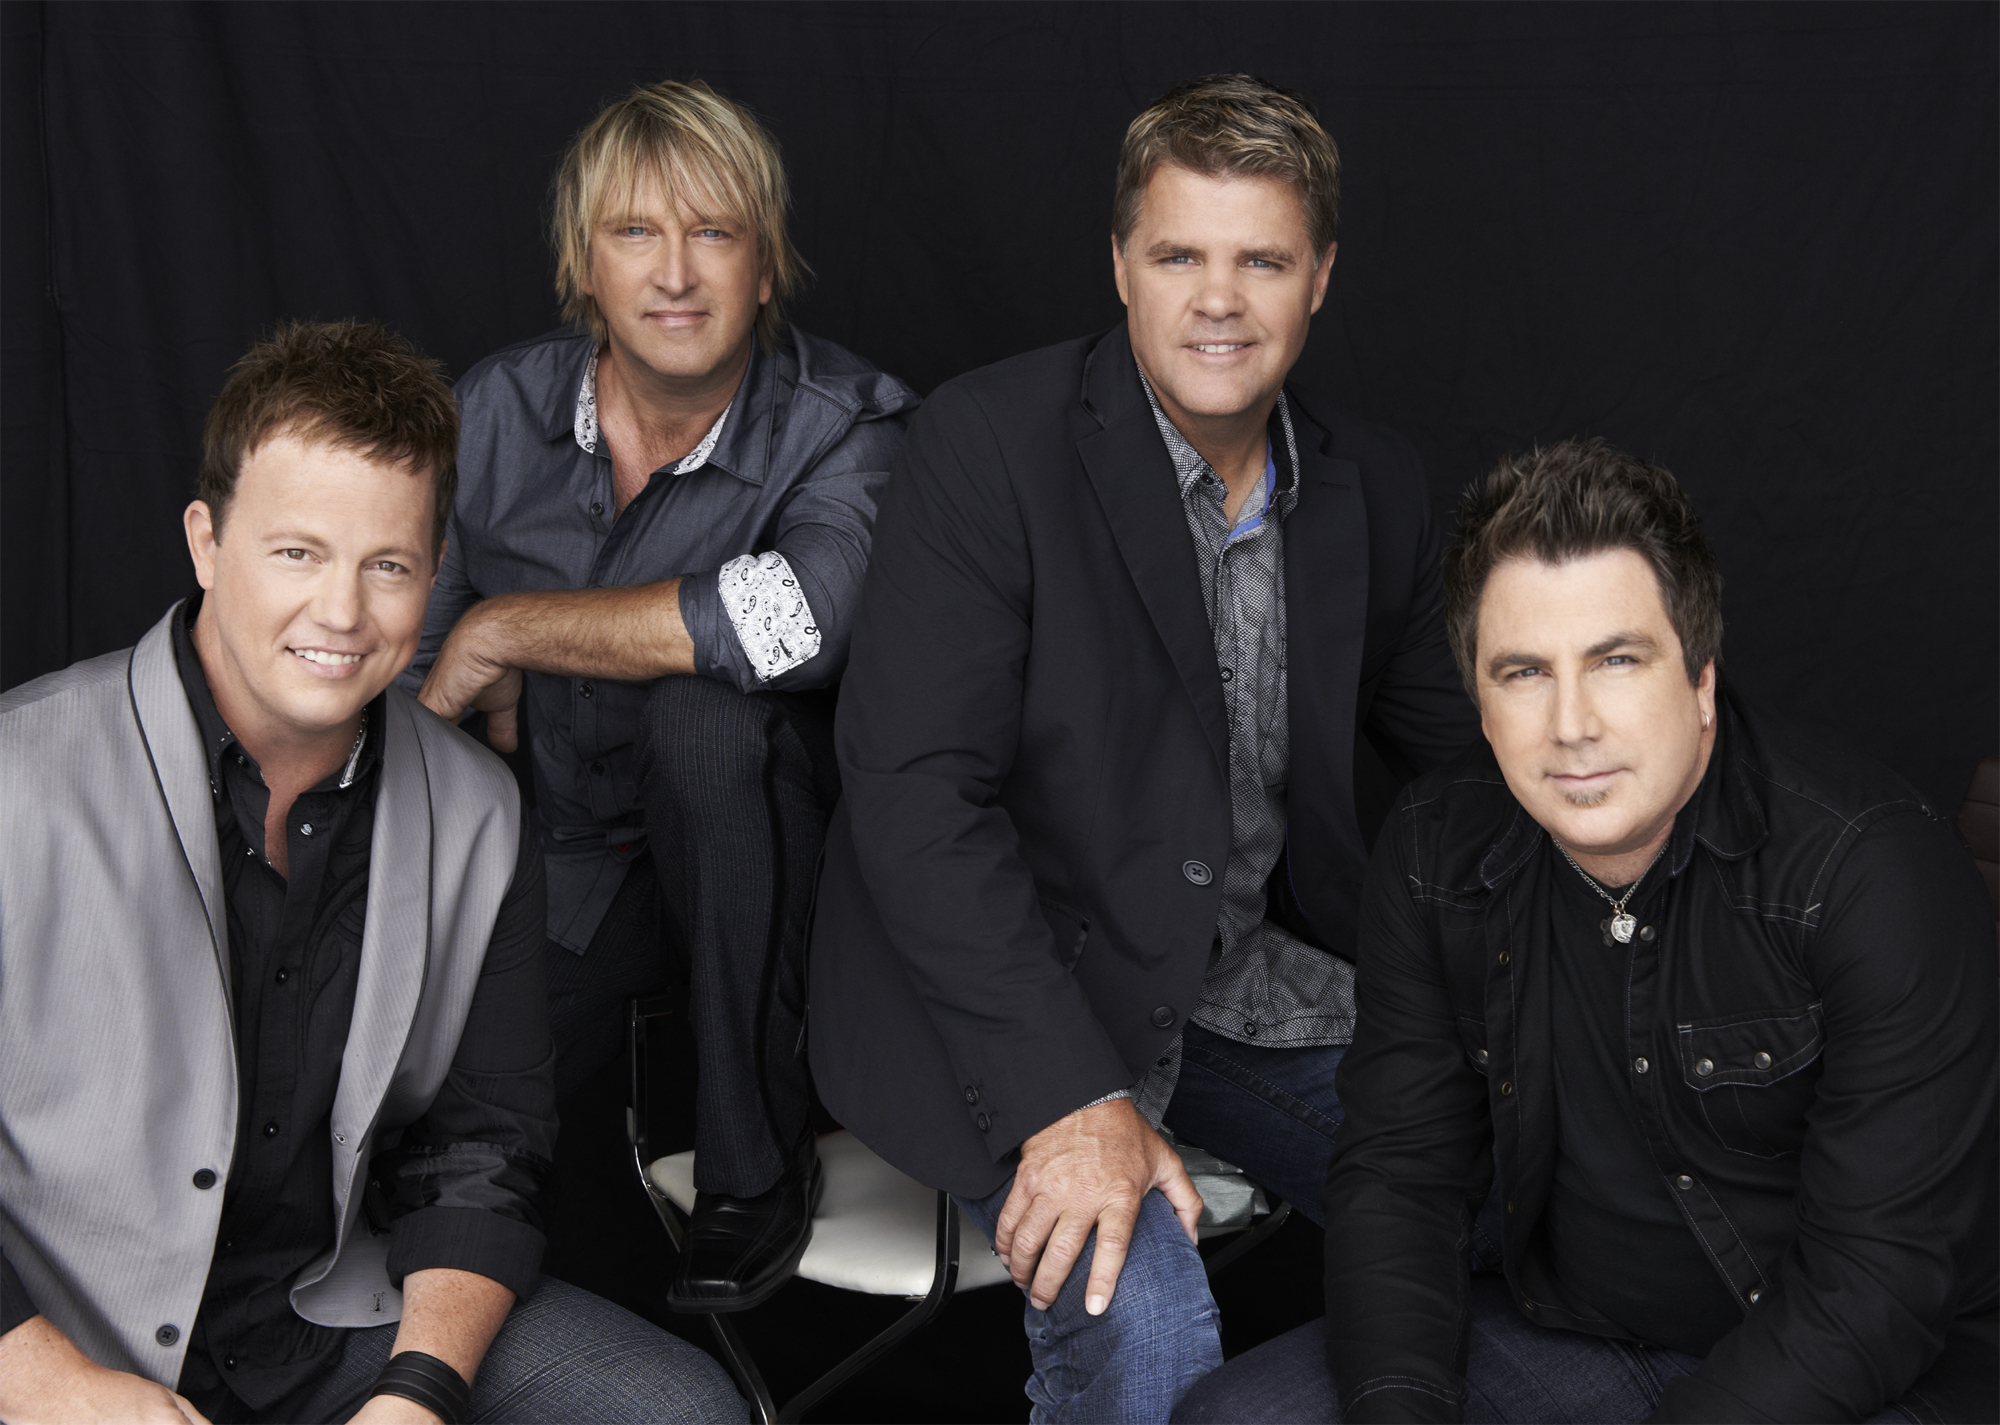 Country Band Lonestar Takes 20th Anniversary Tour To Penn